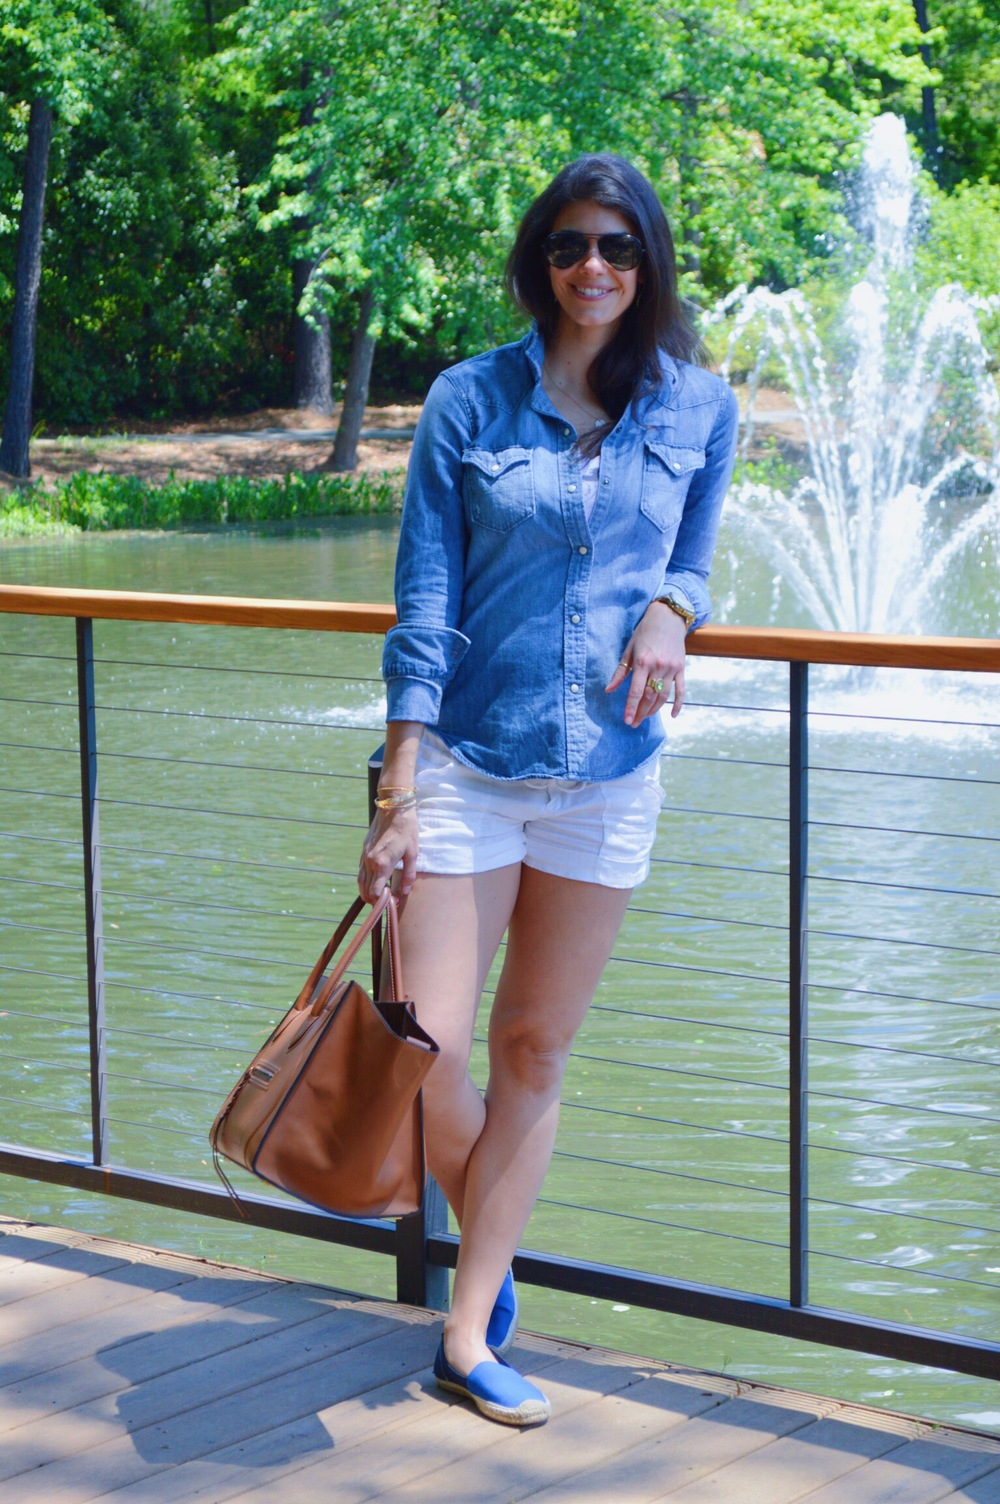 LaurenSchwaiger-Blog-Casual-Spring-Style-The-Umstead-Hotel-Raleigh.jpg